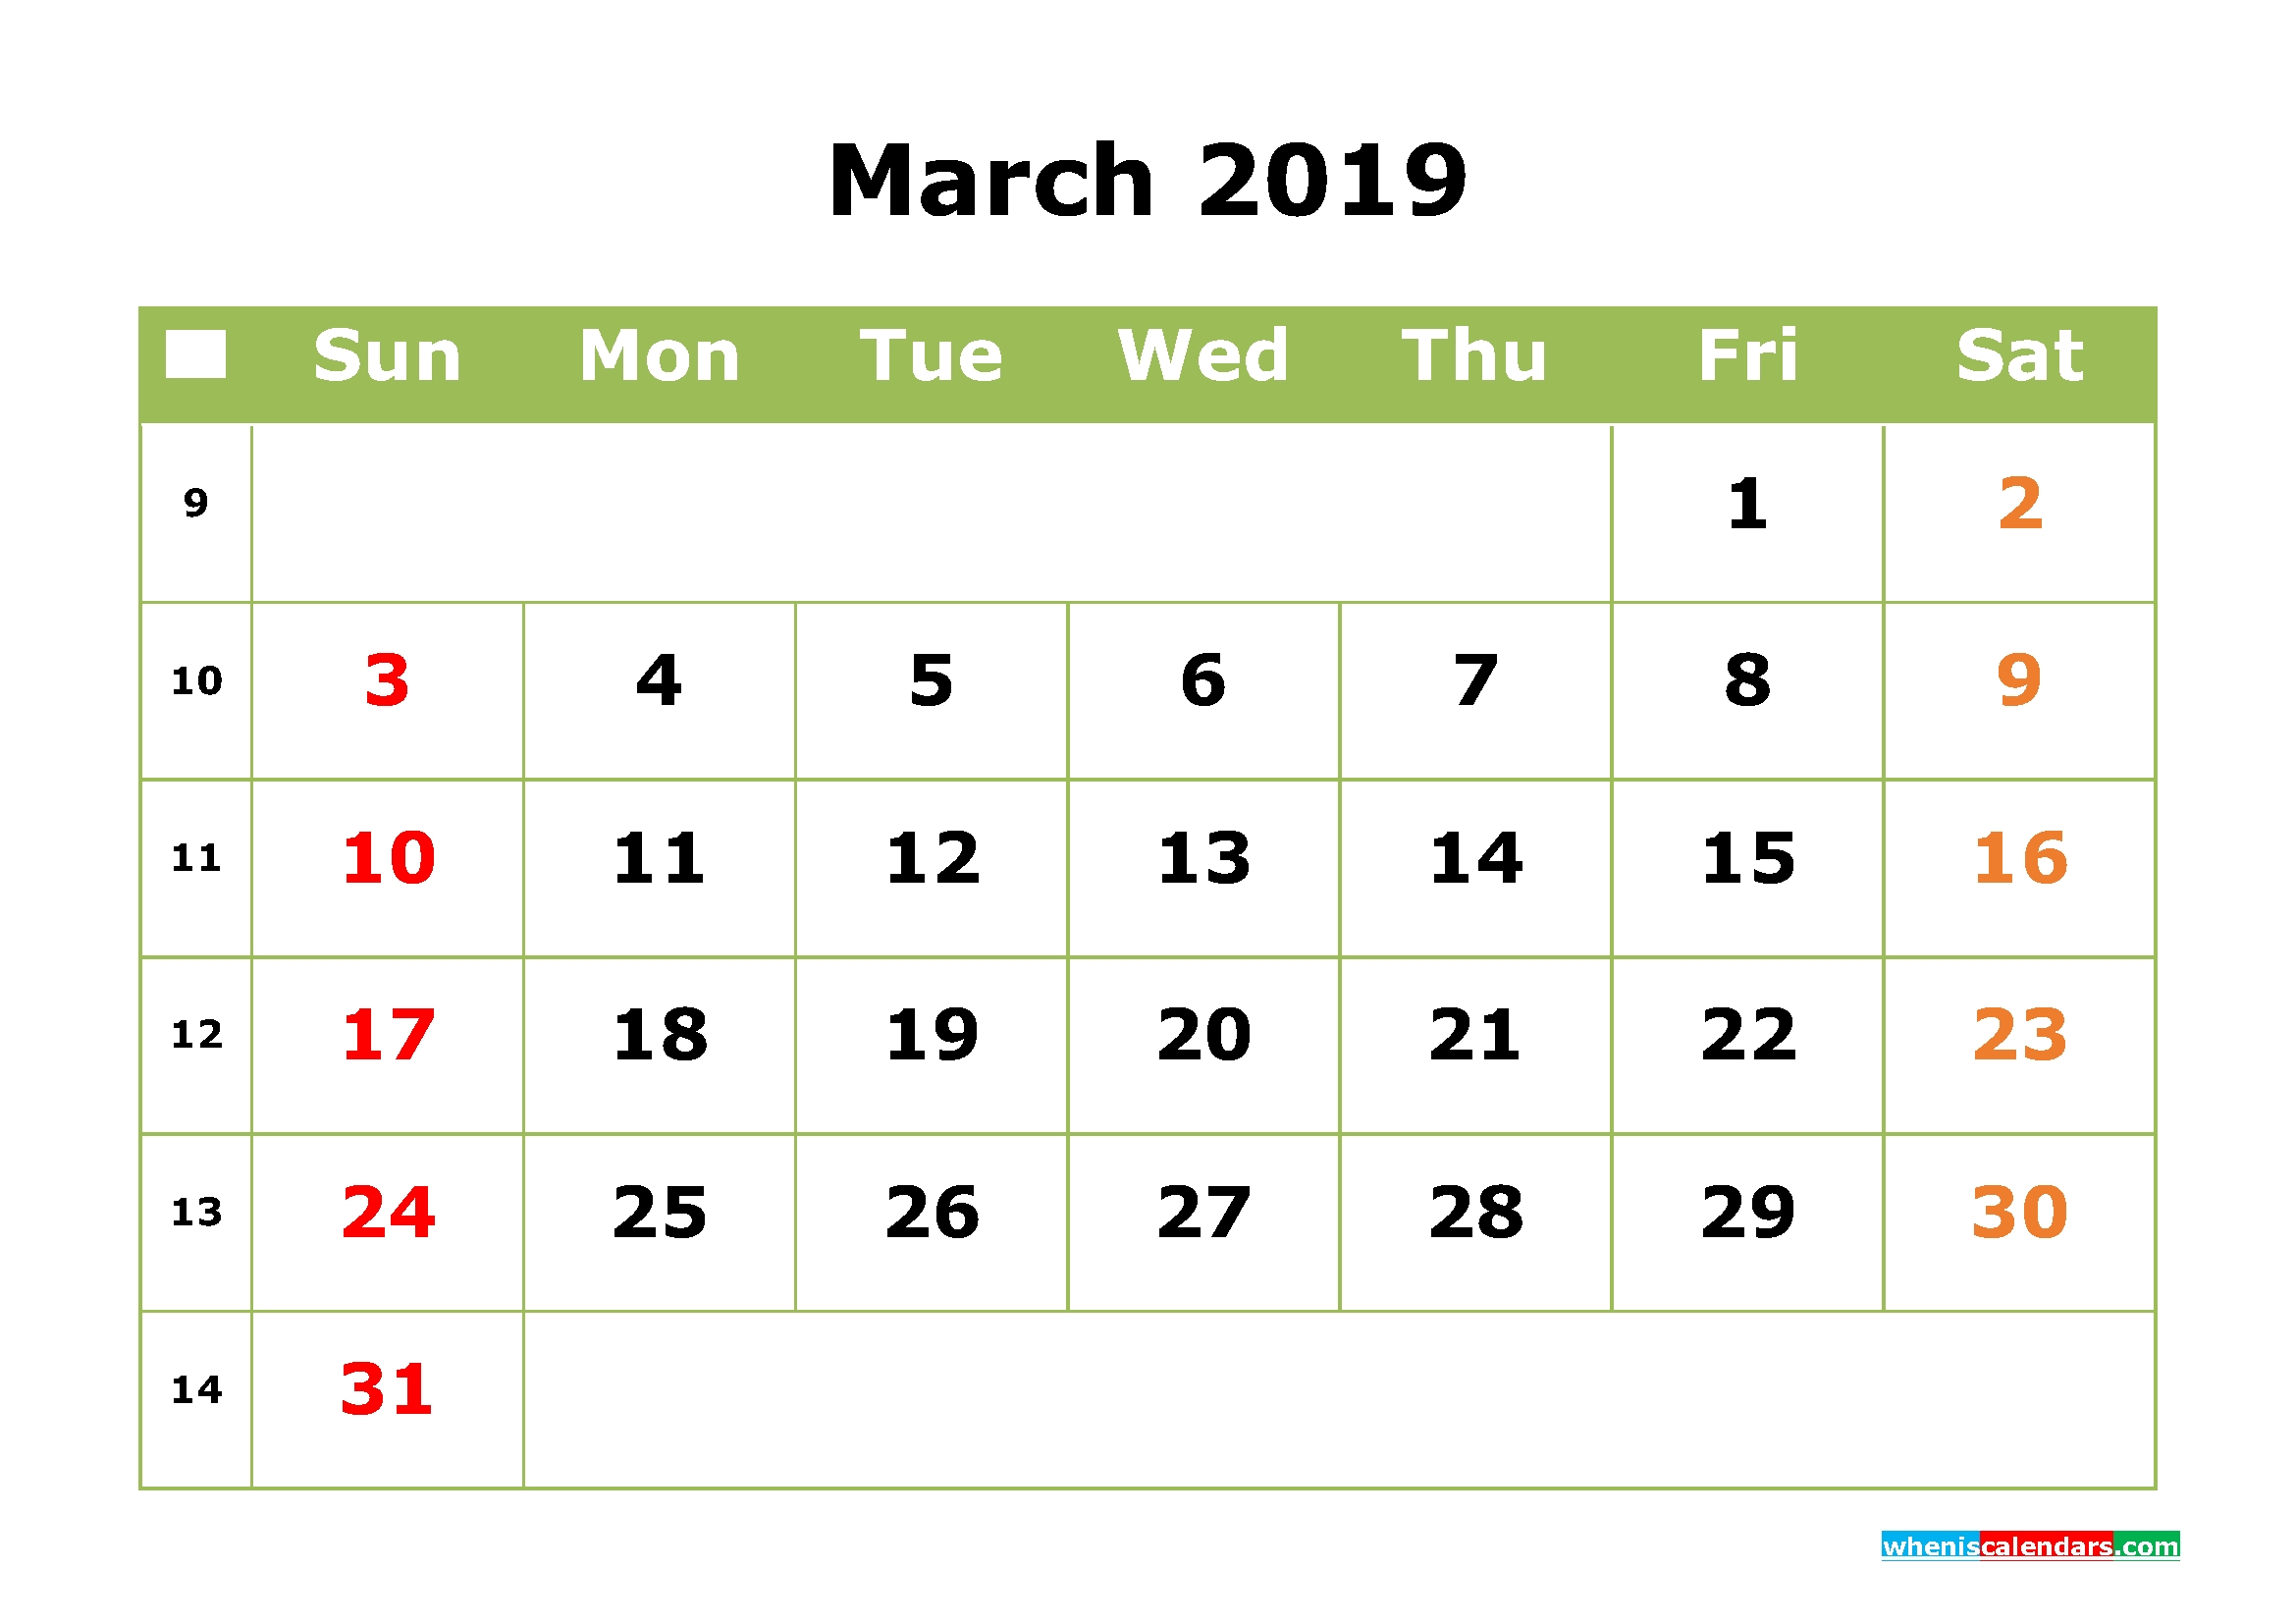 March 2019 Calendar With Week Numbers Printable As Pdf And Image Calendar 2019 Png